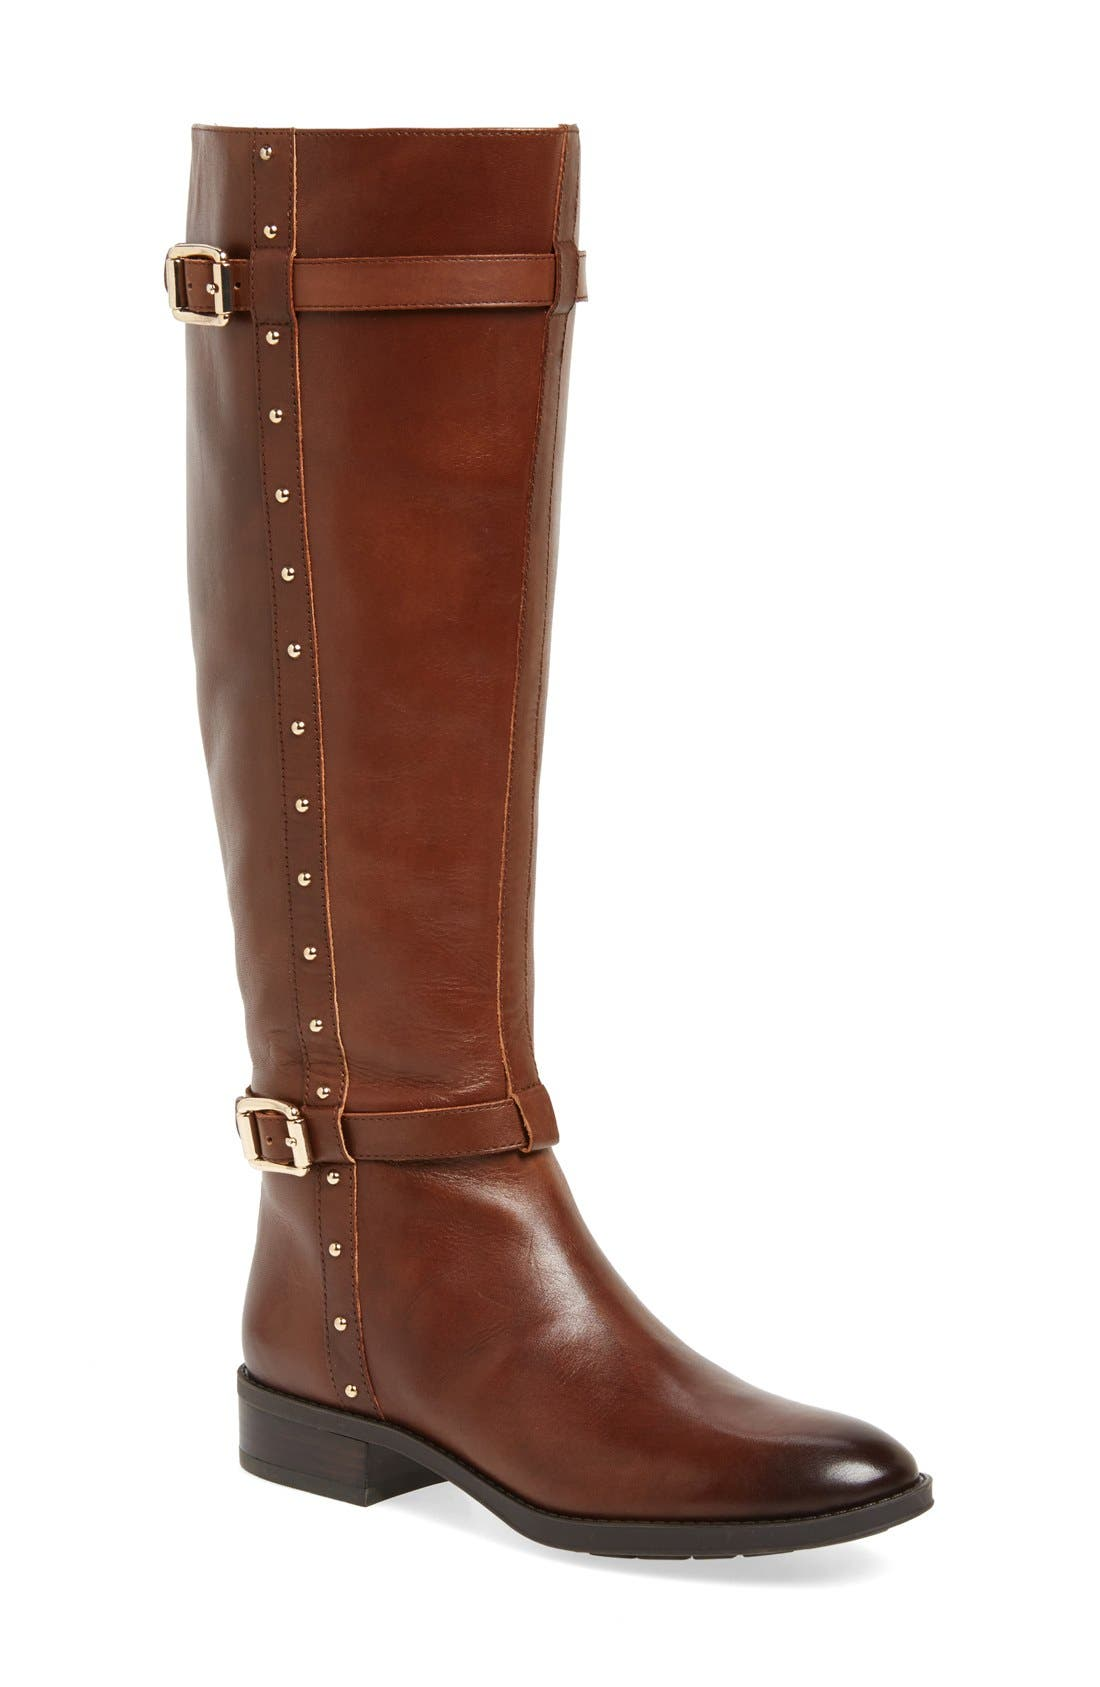 Main Image - Vince Camuto 'Preslen' Riding Boot (Women) (Wide Calf)